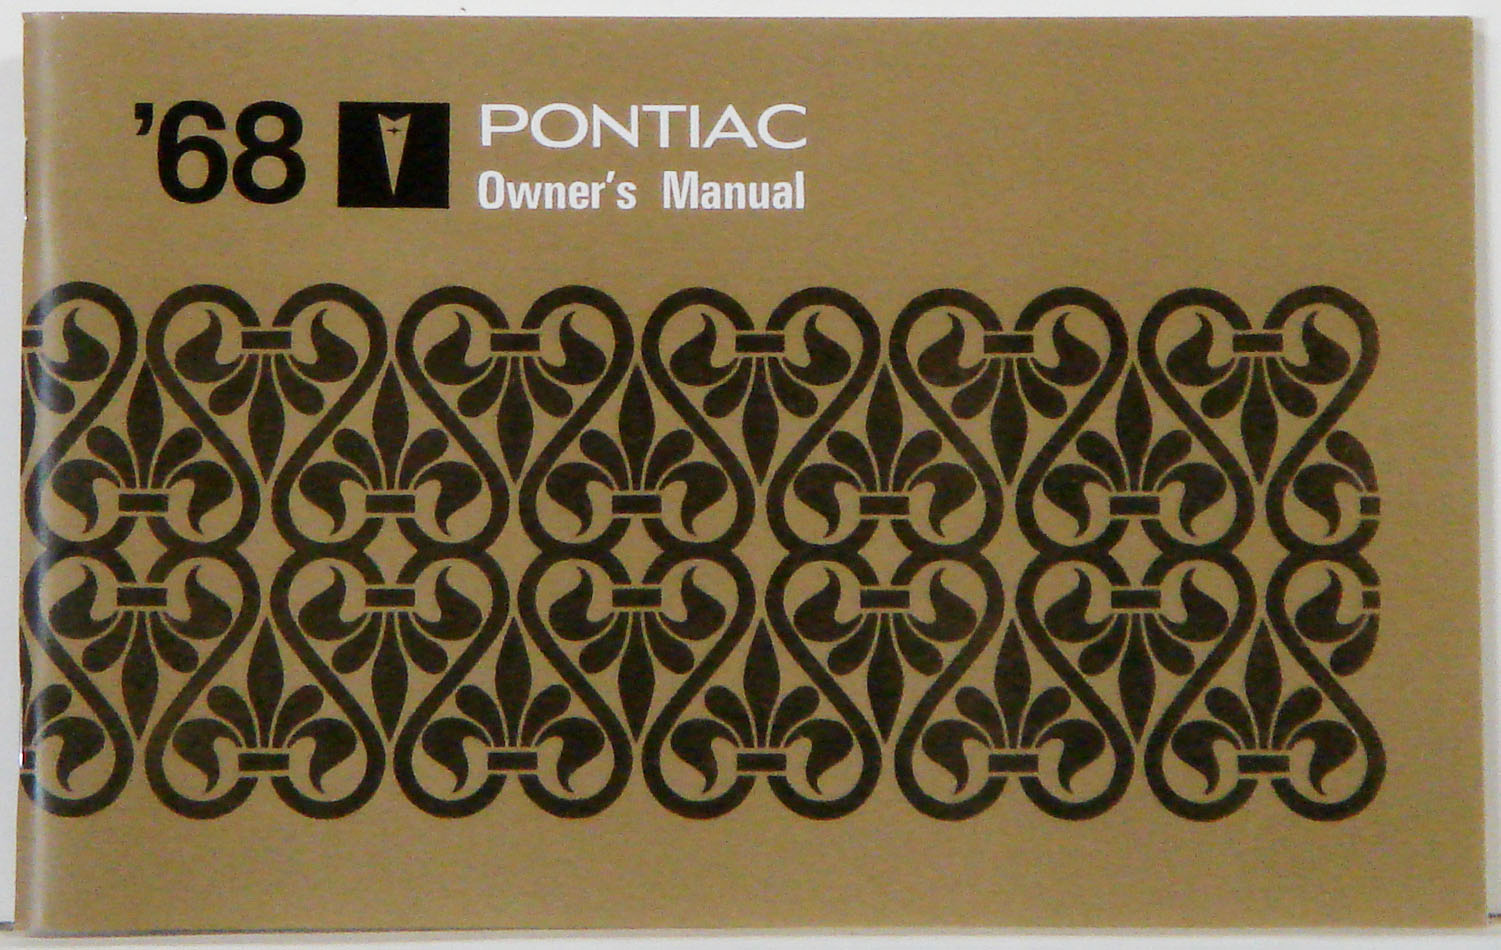 1968 Pontiac Owner's Manual- All Model